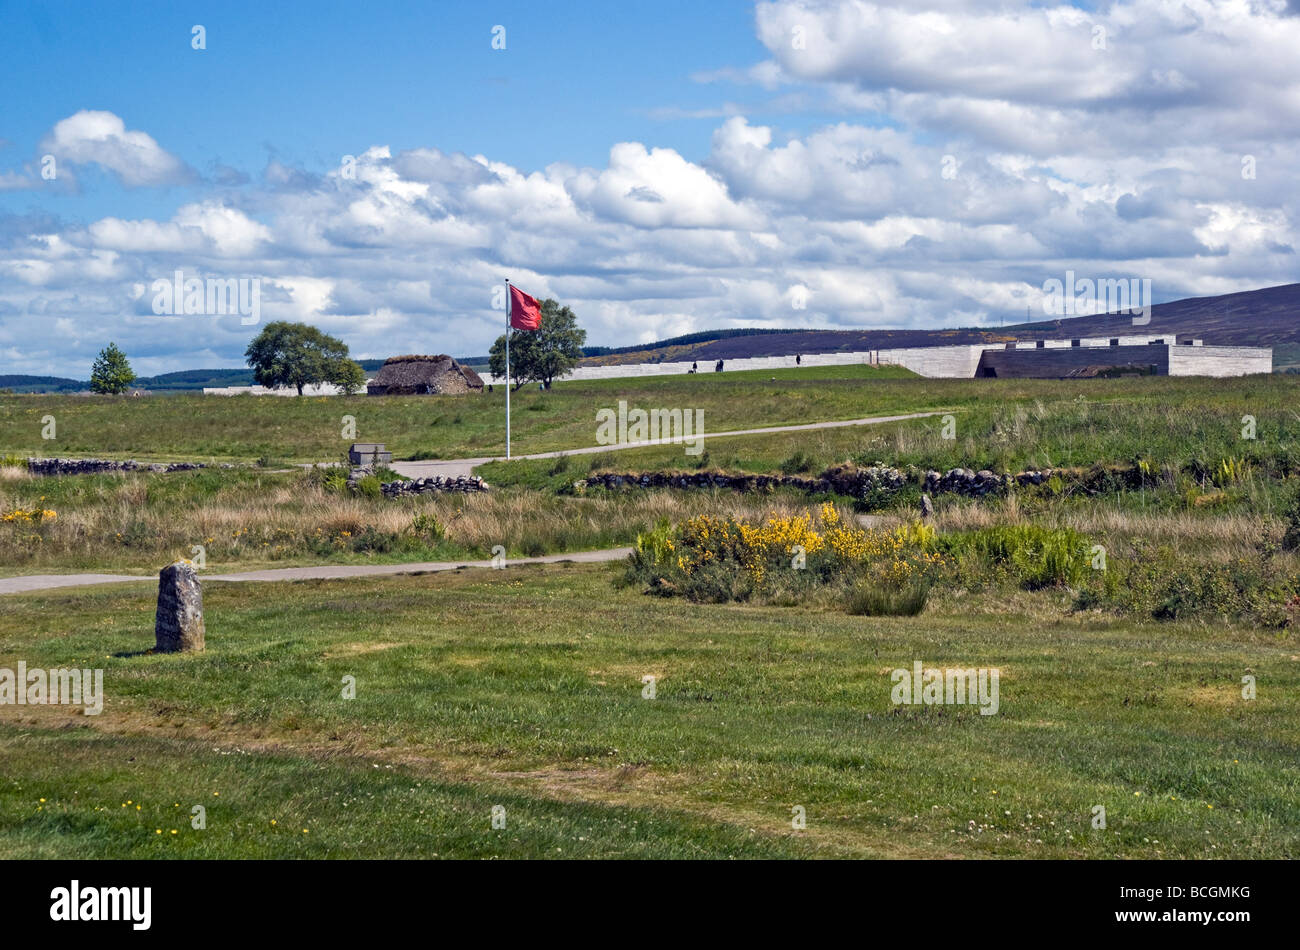 National Trust for Scotland visitor centre at Culloden Moor battle